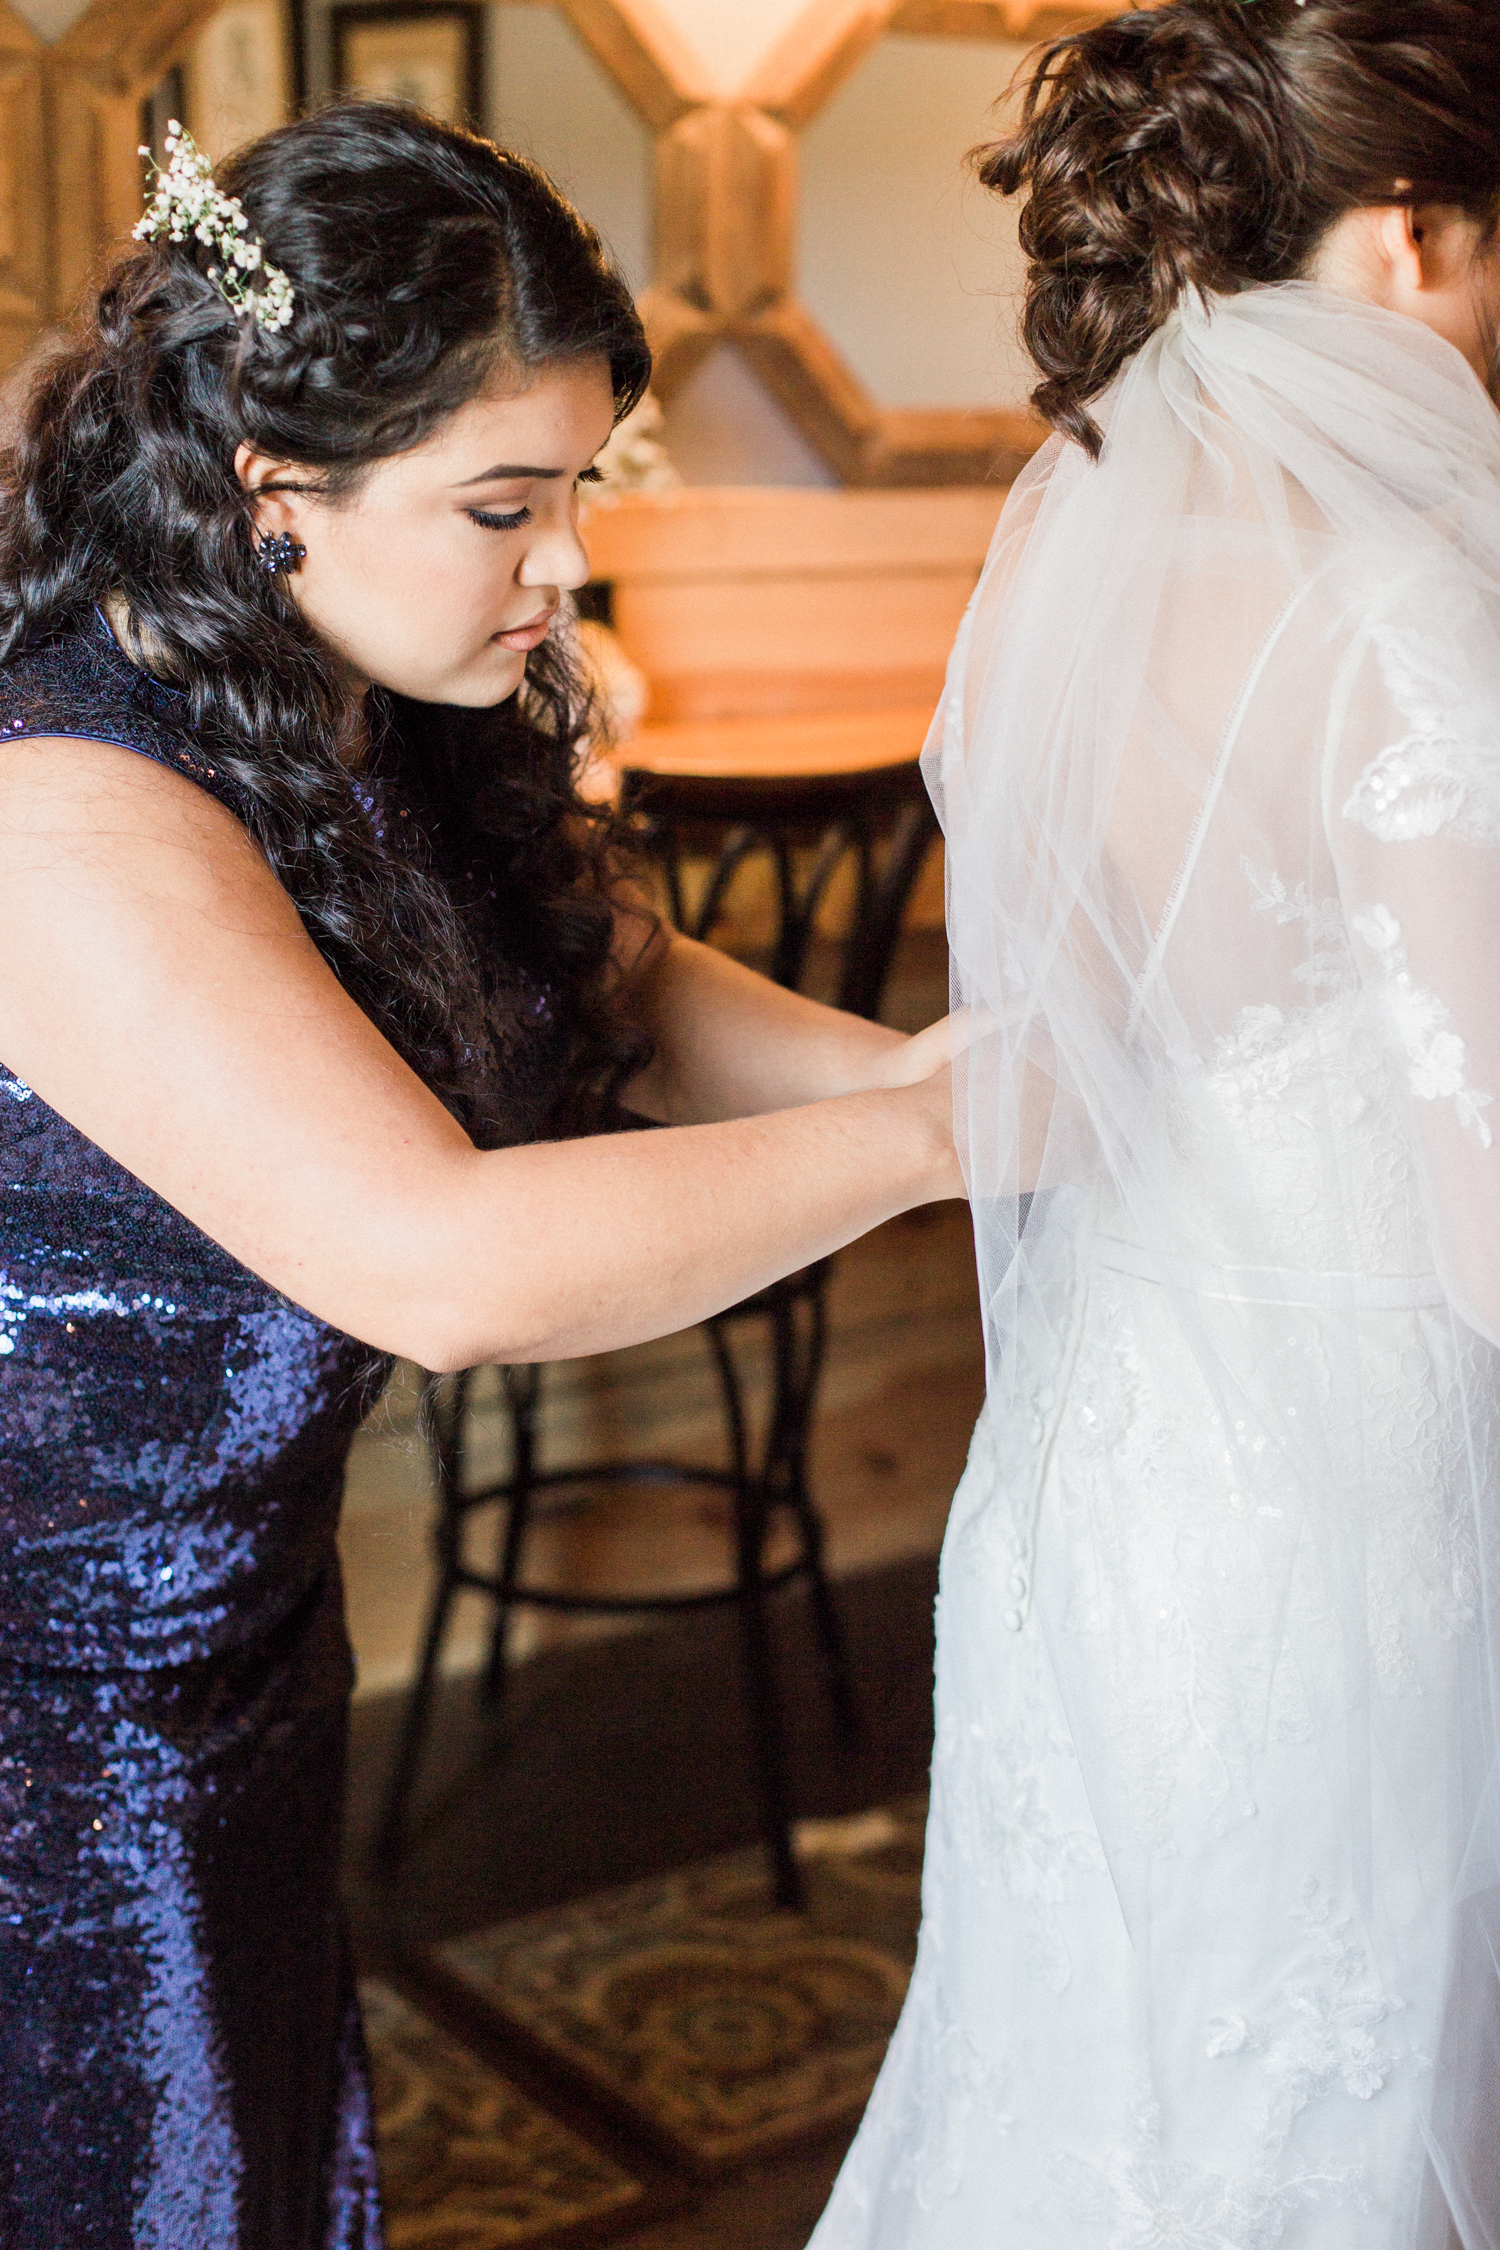 Getting ready wedding photo- bride getting buttoned into her wedding dress by her maid of honor. Summer, outdoor, barn wedding in north Georgia at Hays McDonald Farm in Jefferson, Georgia. Photo by Kesia Marie Photography - Fine Art Wedding Photographer.